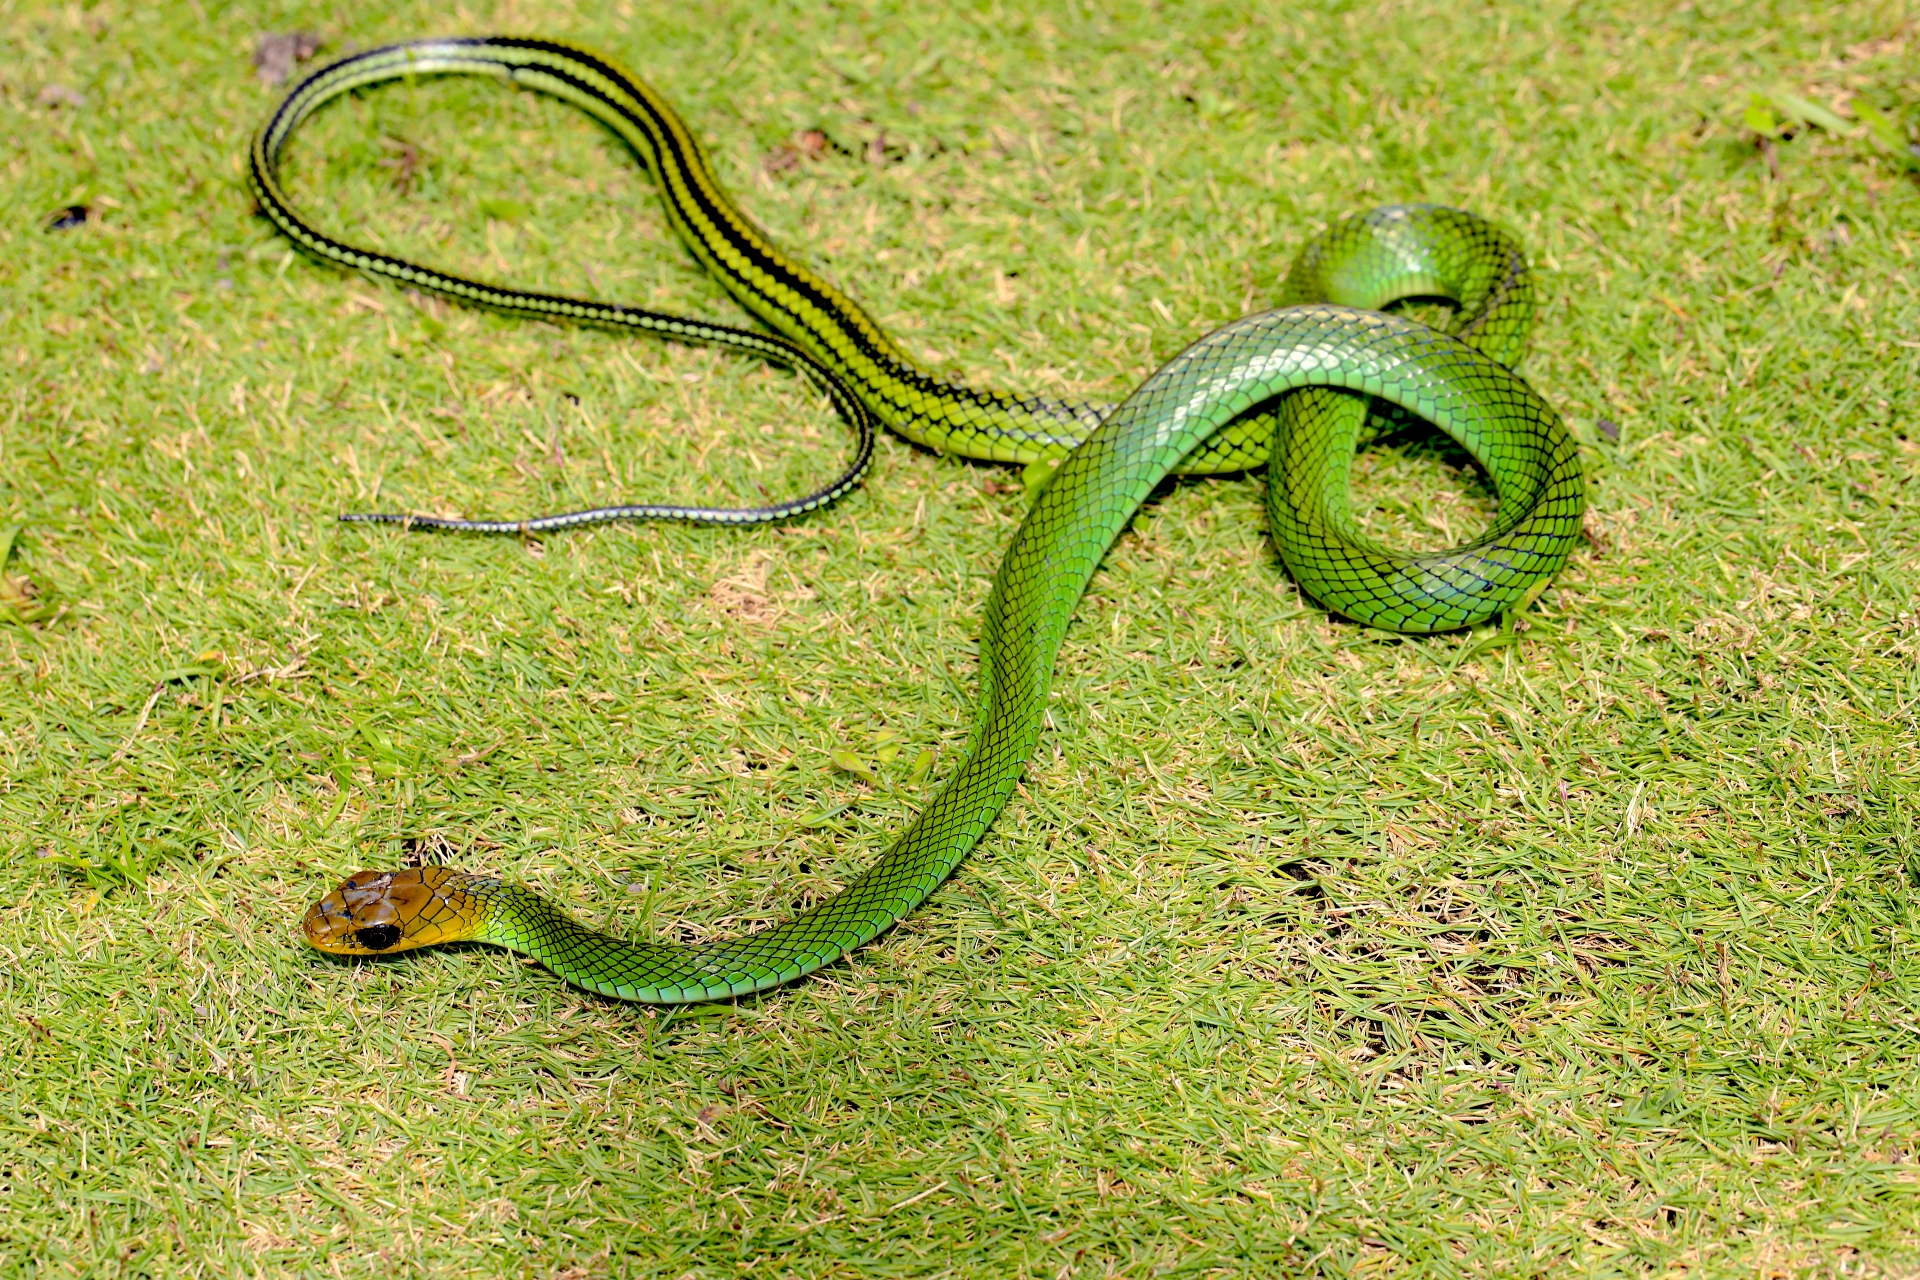 The green ratsnake is a non-venomous slender serpent that lives in trees. Though common it is extremely hard to spot amidst the dense, green foliage of the forest. 